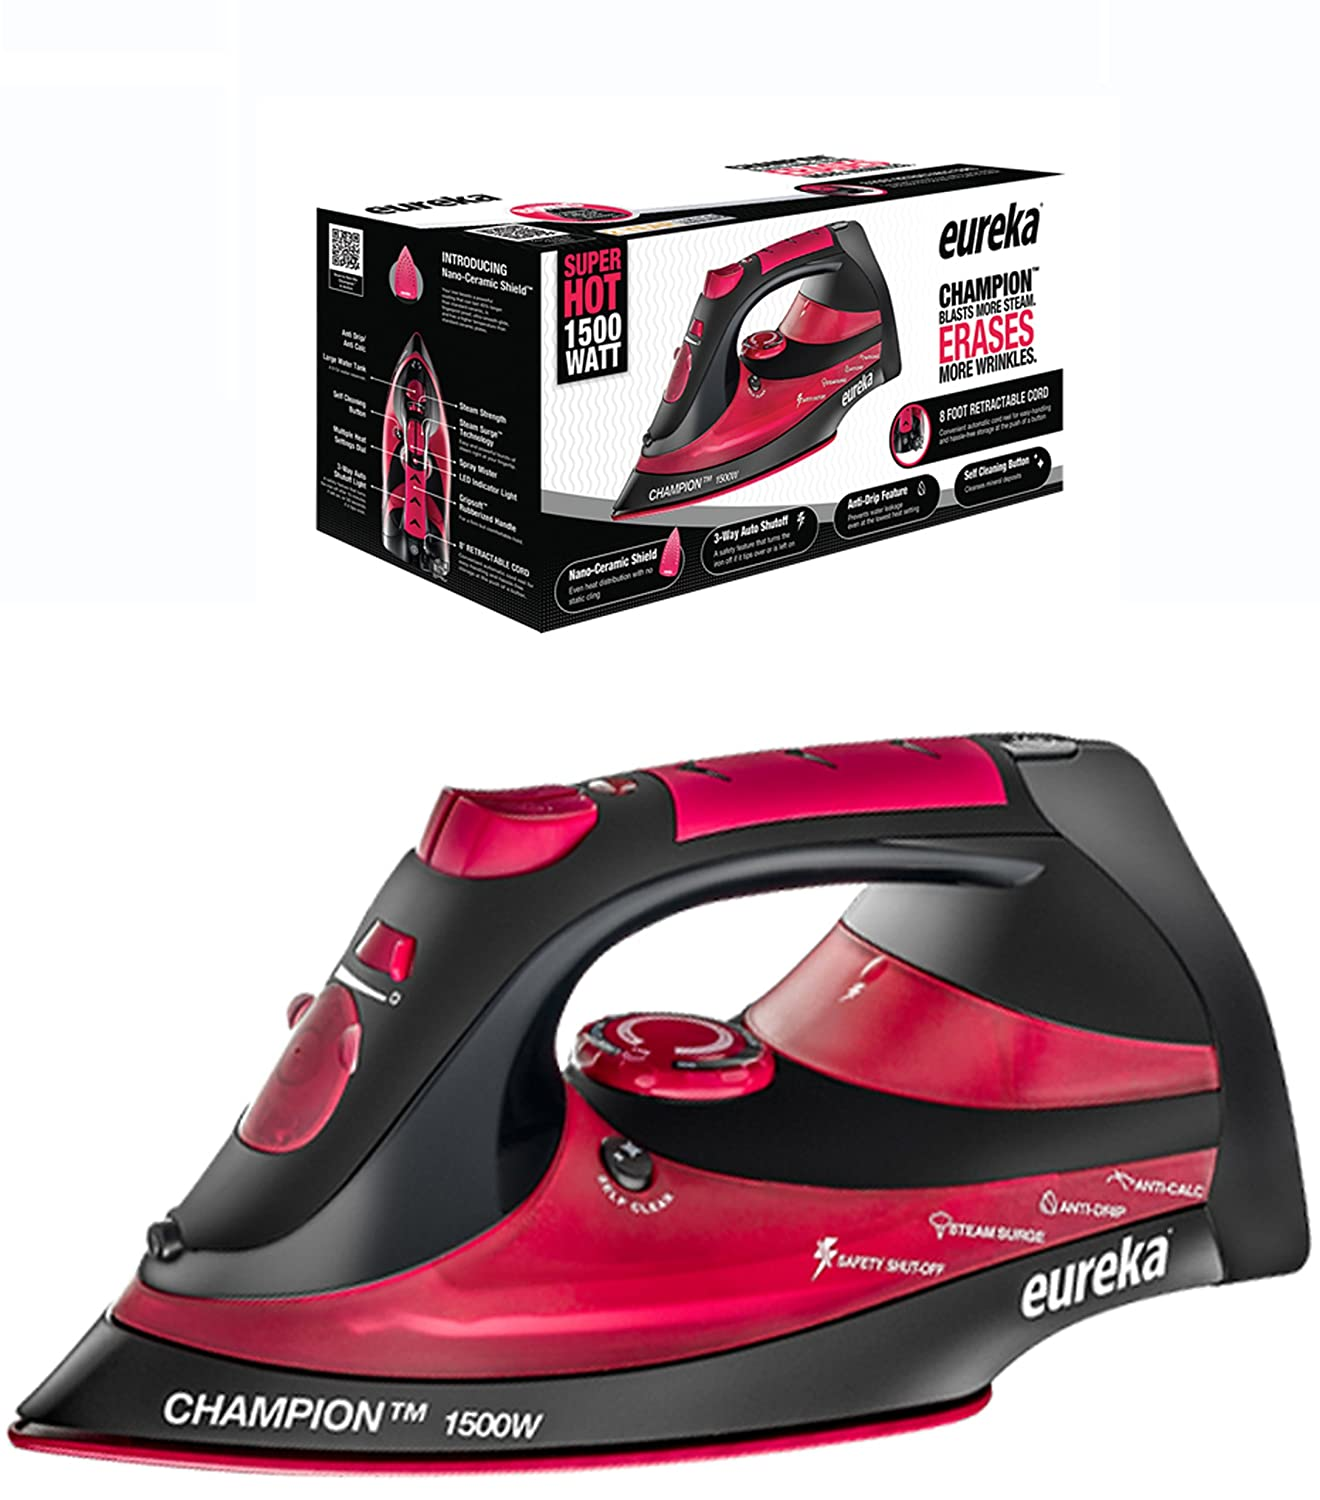 Eureka Champion Super Hot 1500 Watt Iron Powerful Steam Surge Technology With 8 FT Retractable Cord-Red-Pouch Included